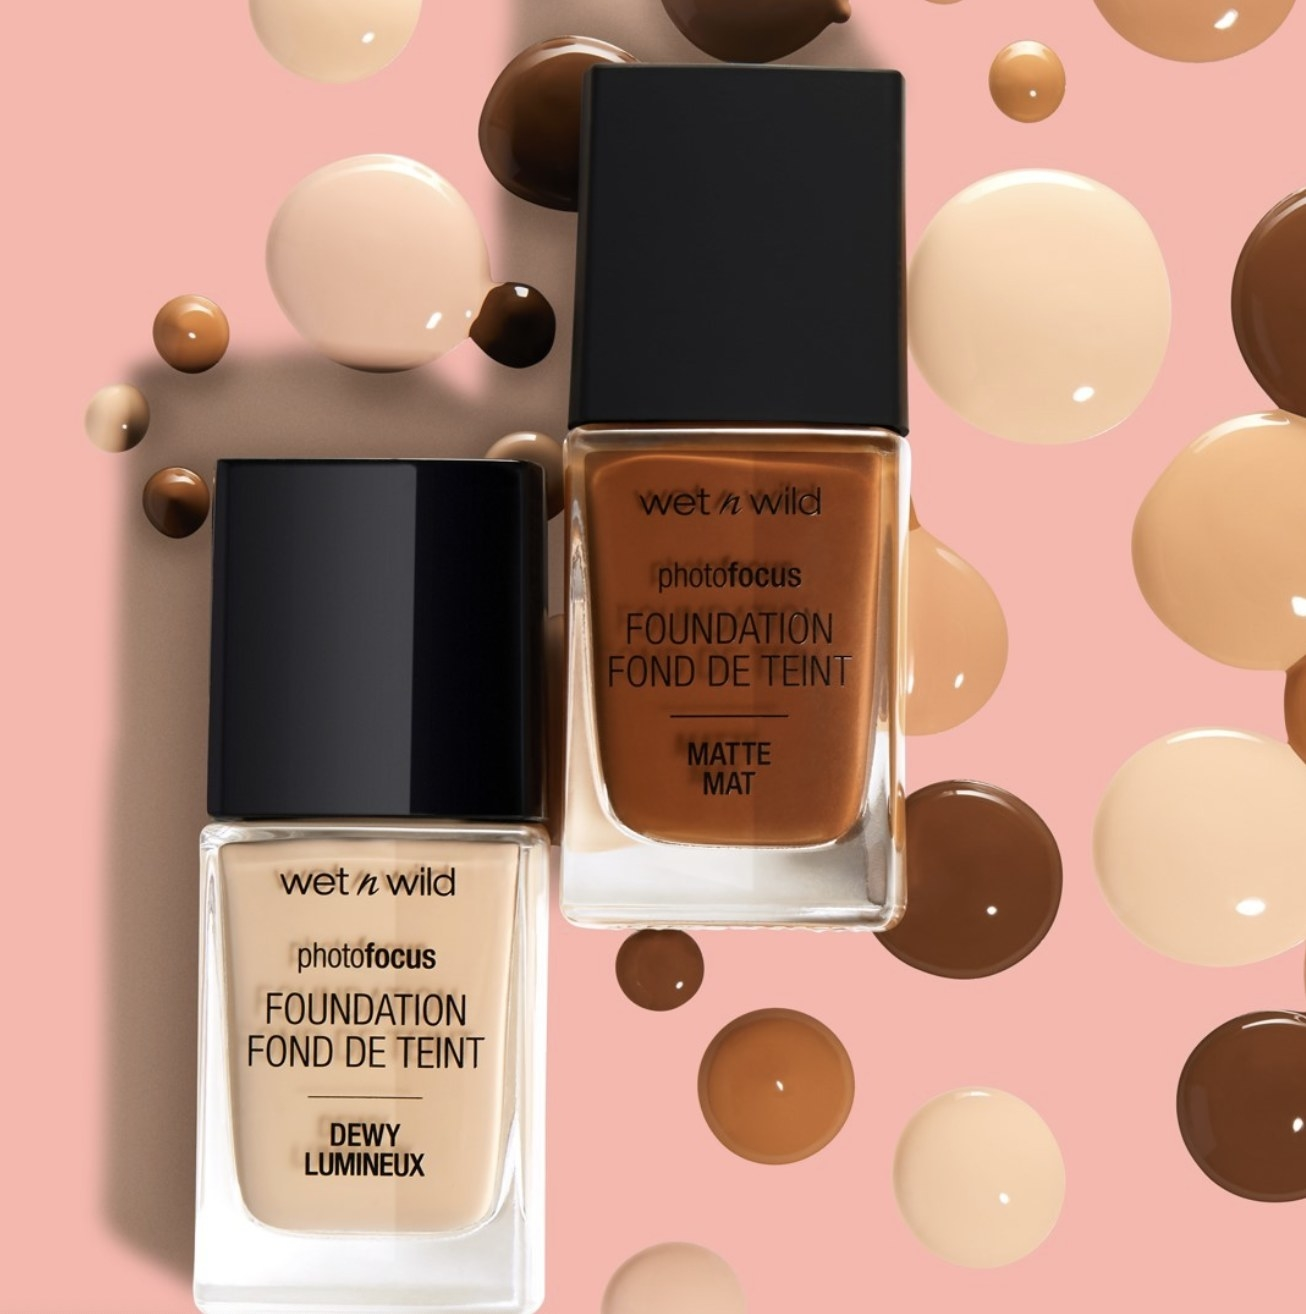 Wet n Wild photofocus foundation in dewy and matte